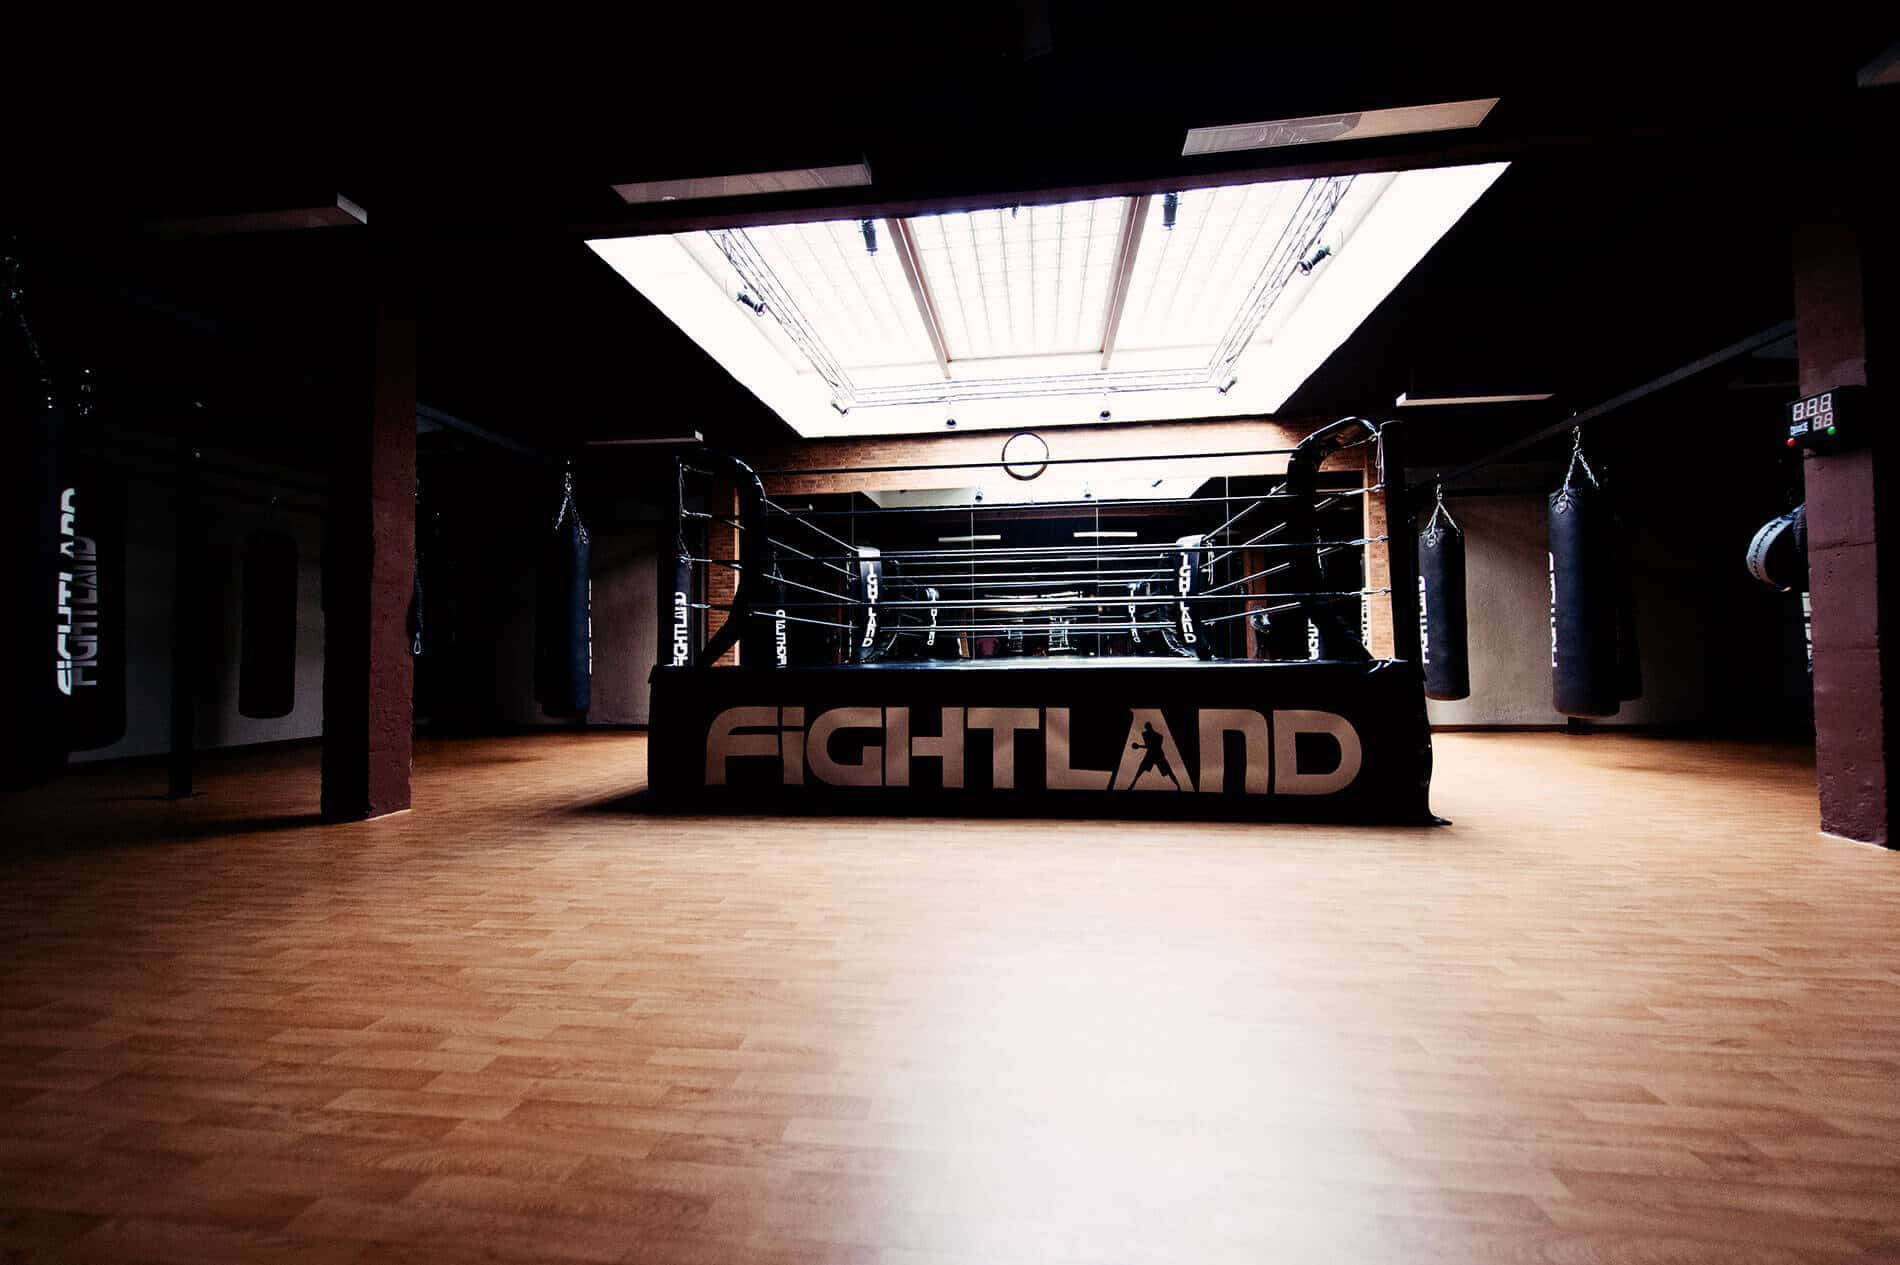 Fightland - Club Boxeo - Azca Madrid